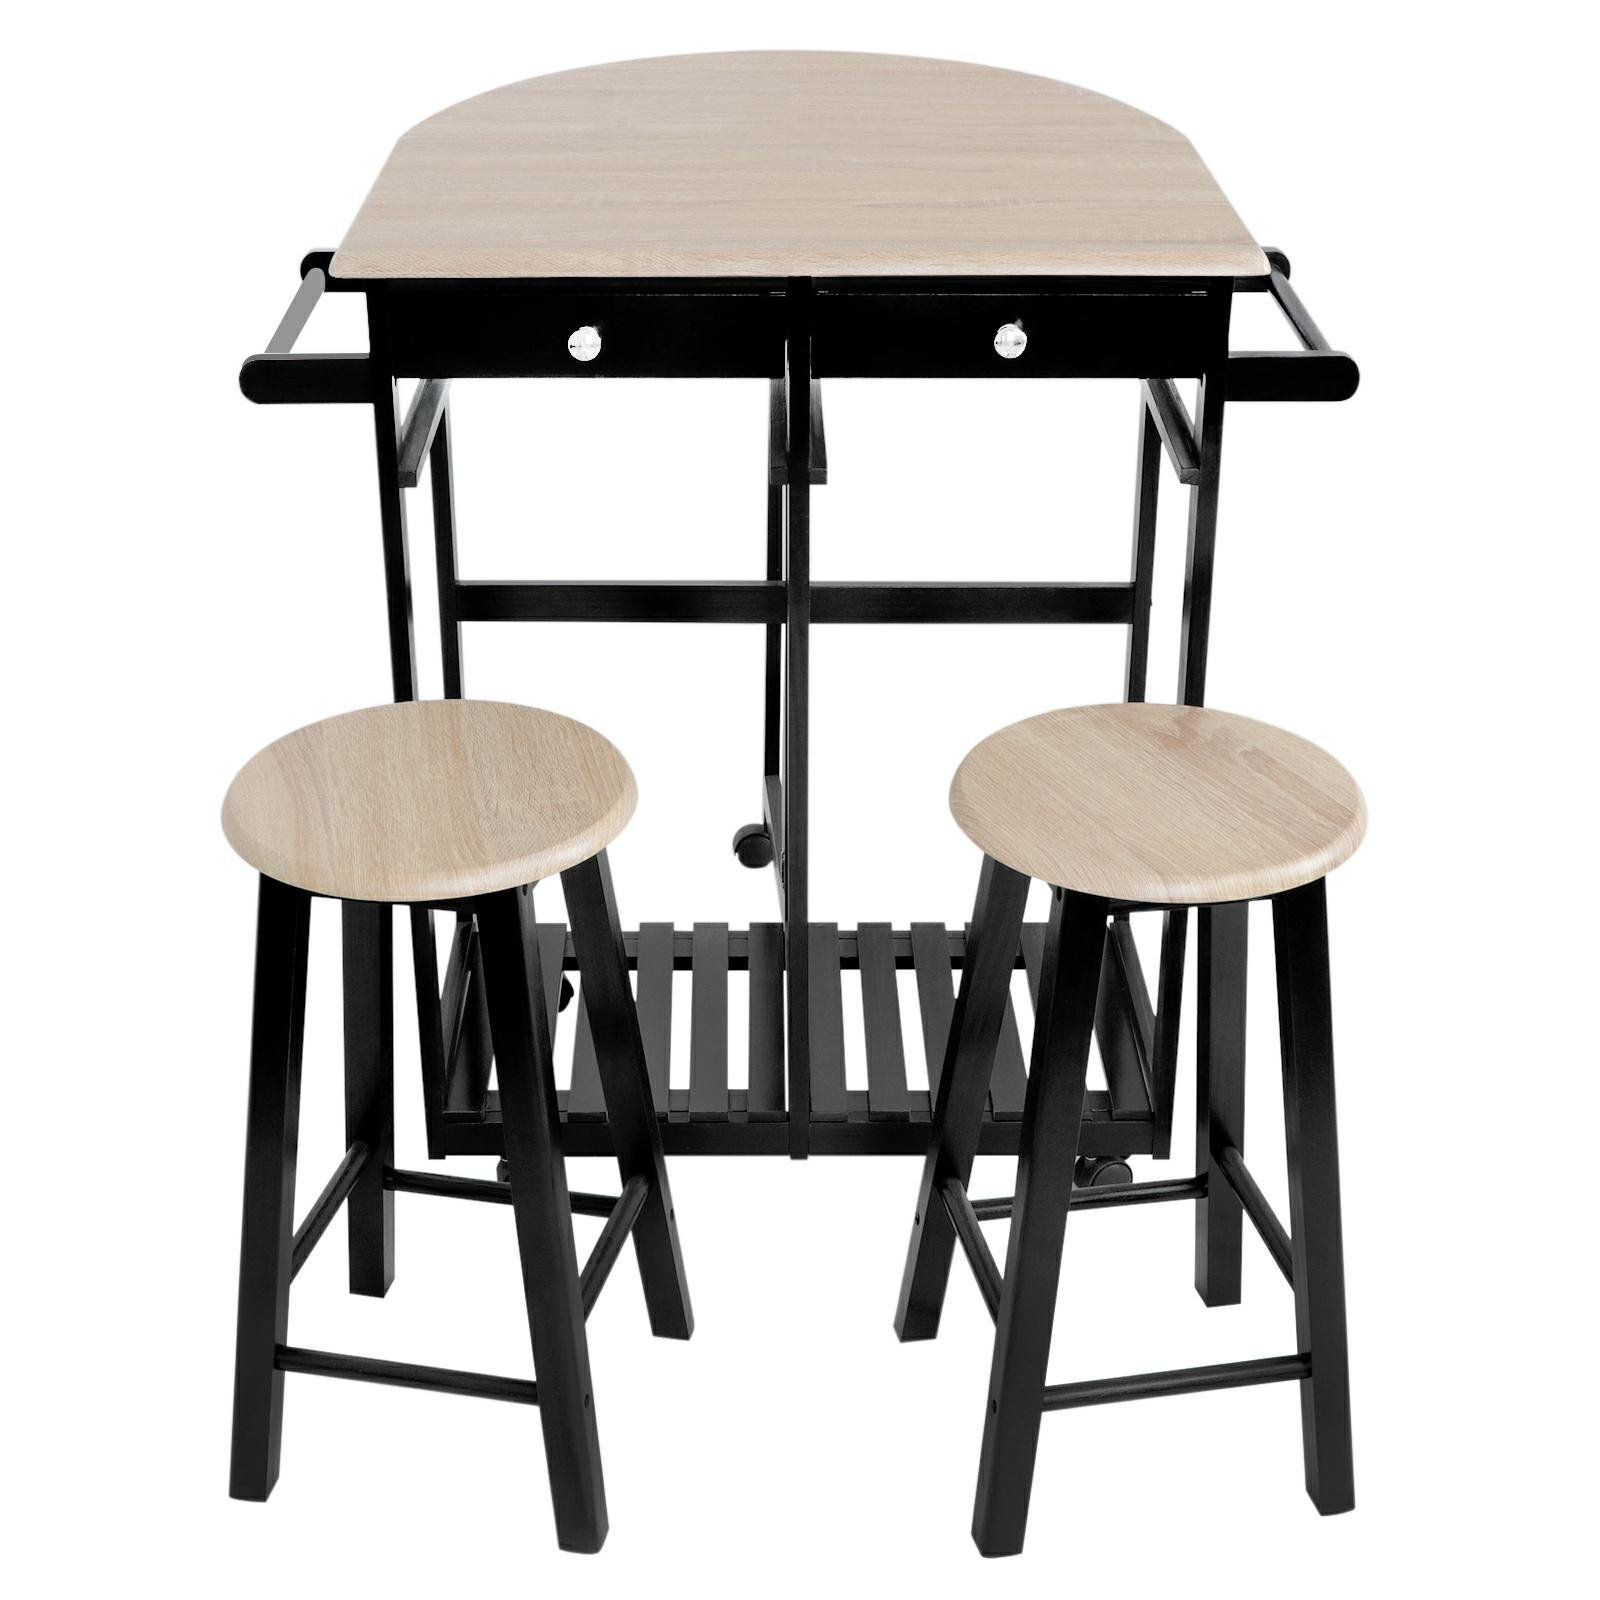 ZENY Home Kitchen Furniture 3Piece Dining Table Set Wooden ...